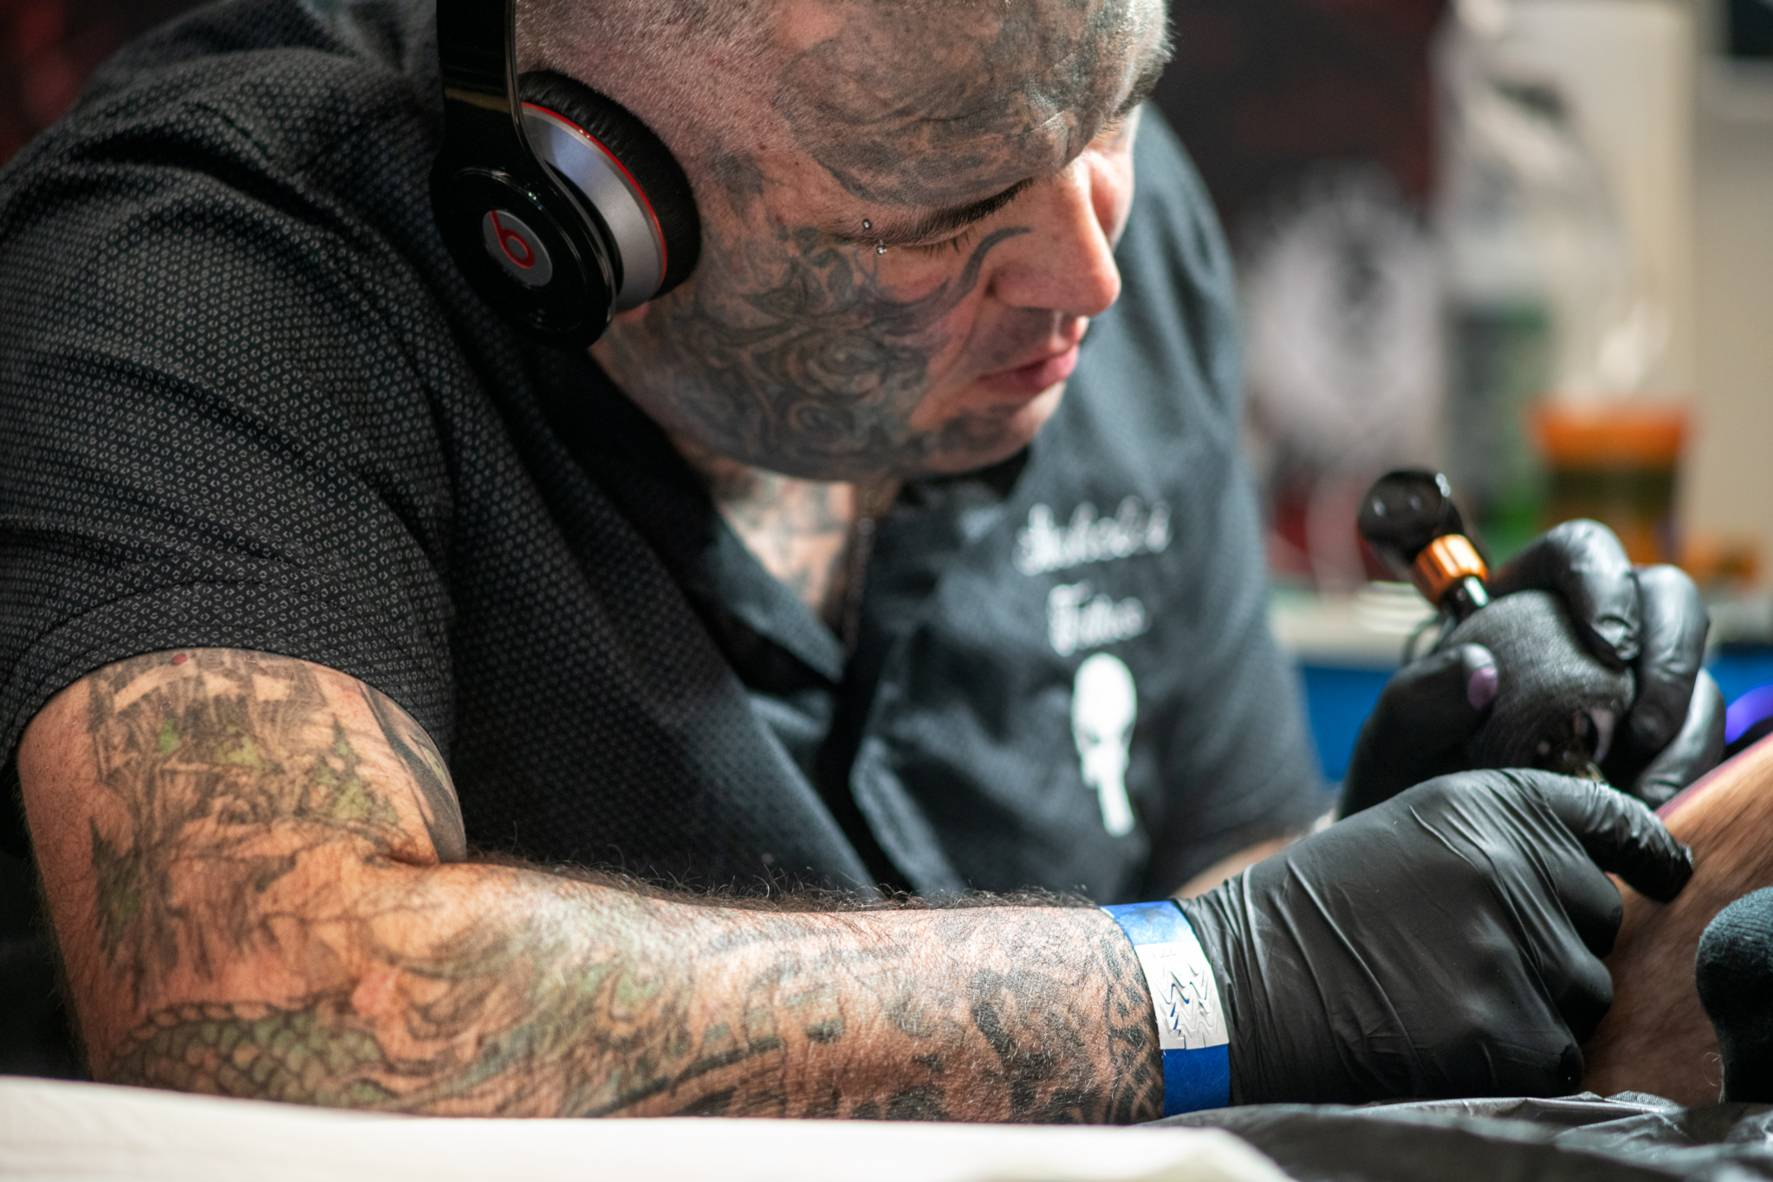 FA_Out_R2_Tattoo_Titisee_2019_07